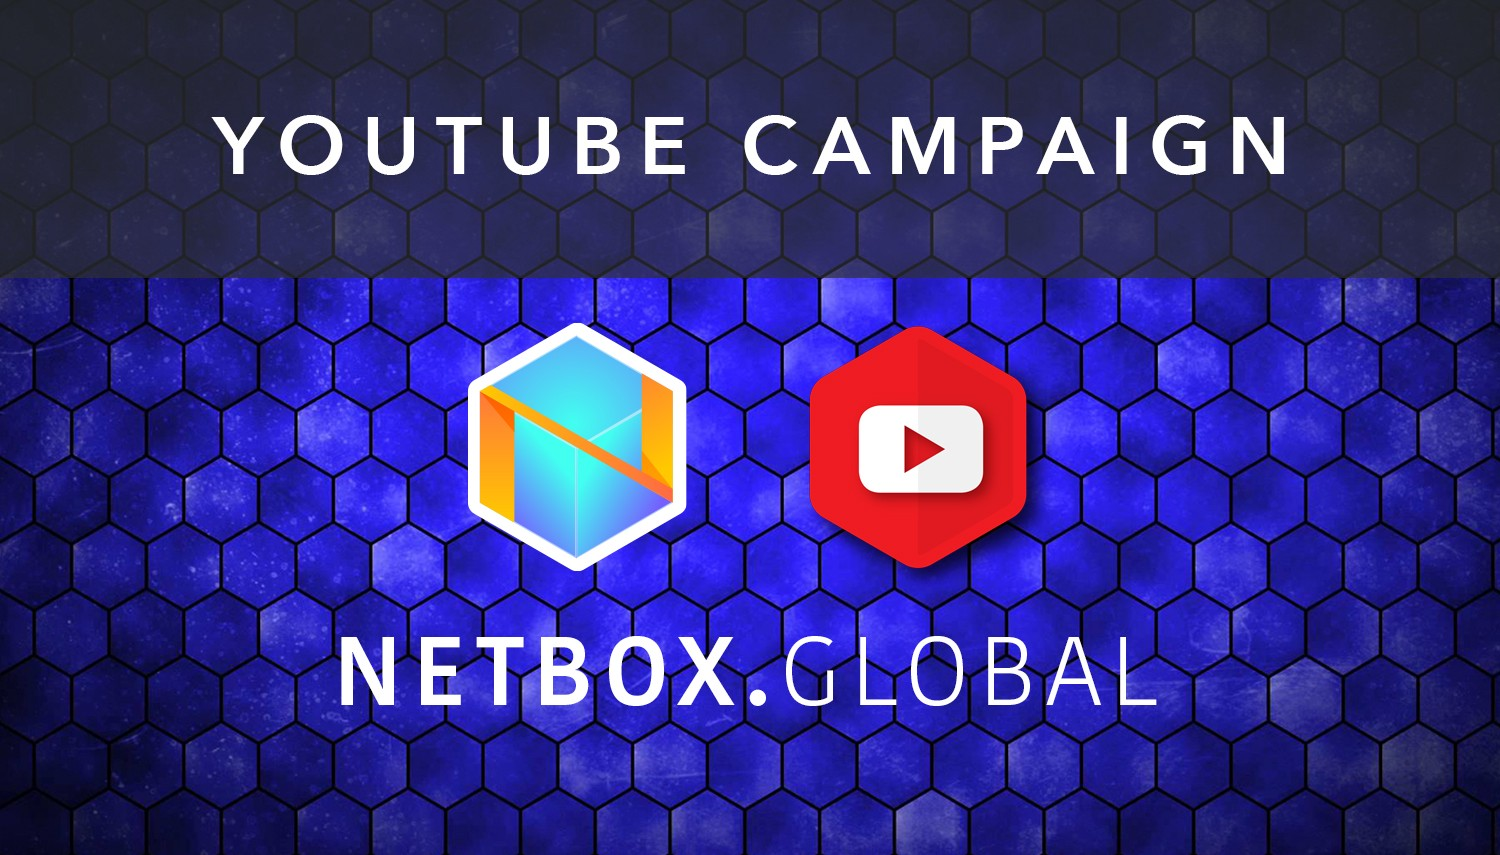 Netbox Global YouTube Campaign: How to Setup Masternode in a